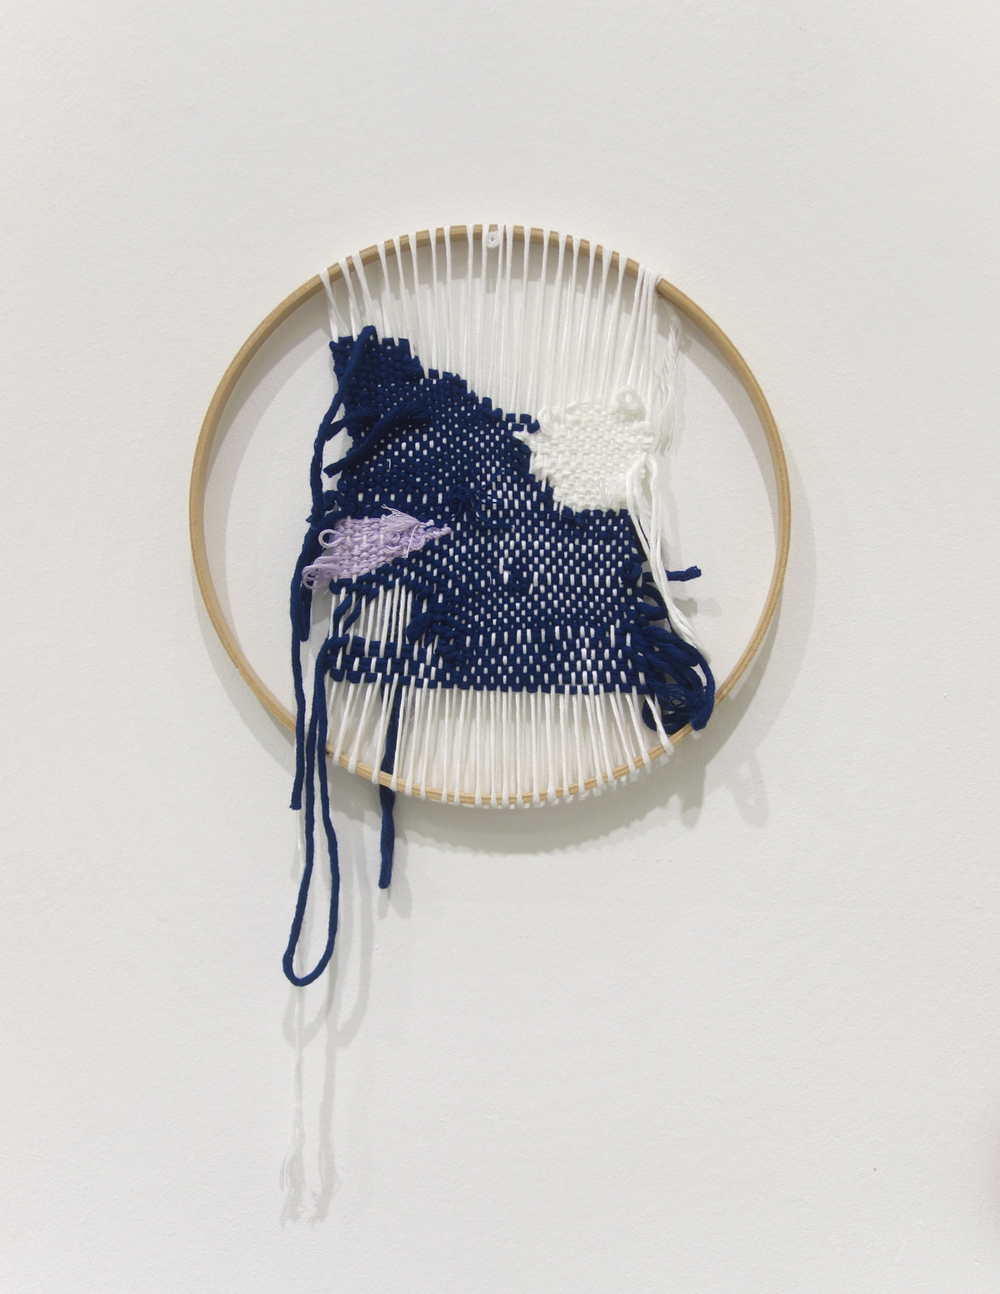 Izziyana Suhaimi, Cross Section of Bone VI, 2015, Cotton thread woven on wooden hoop, H33 x W27 cm.jpg